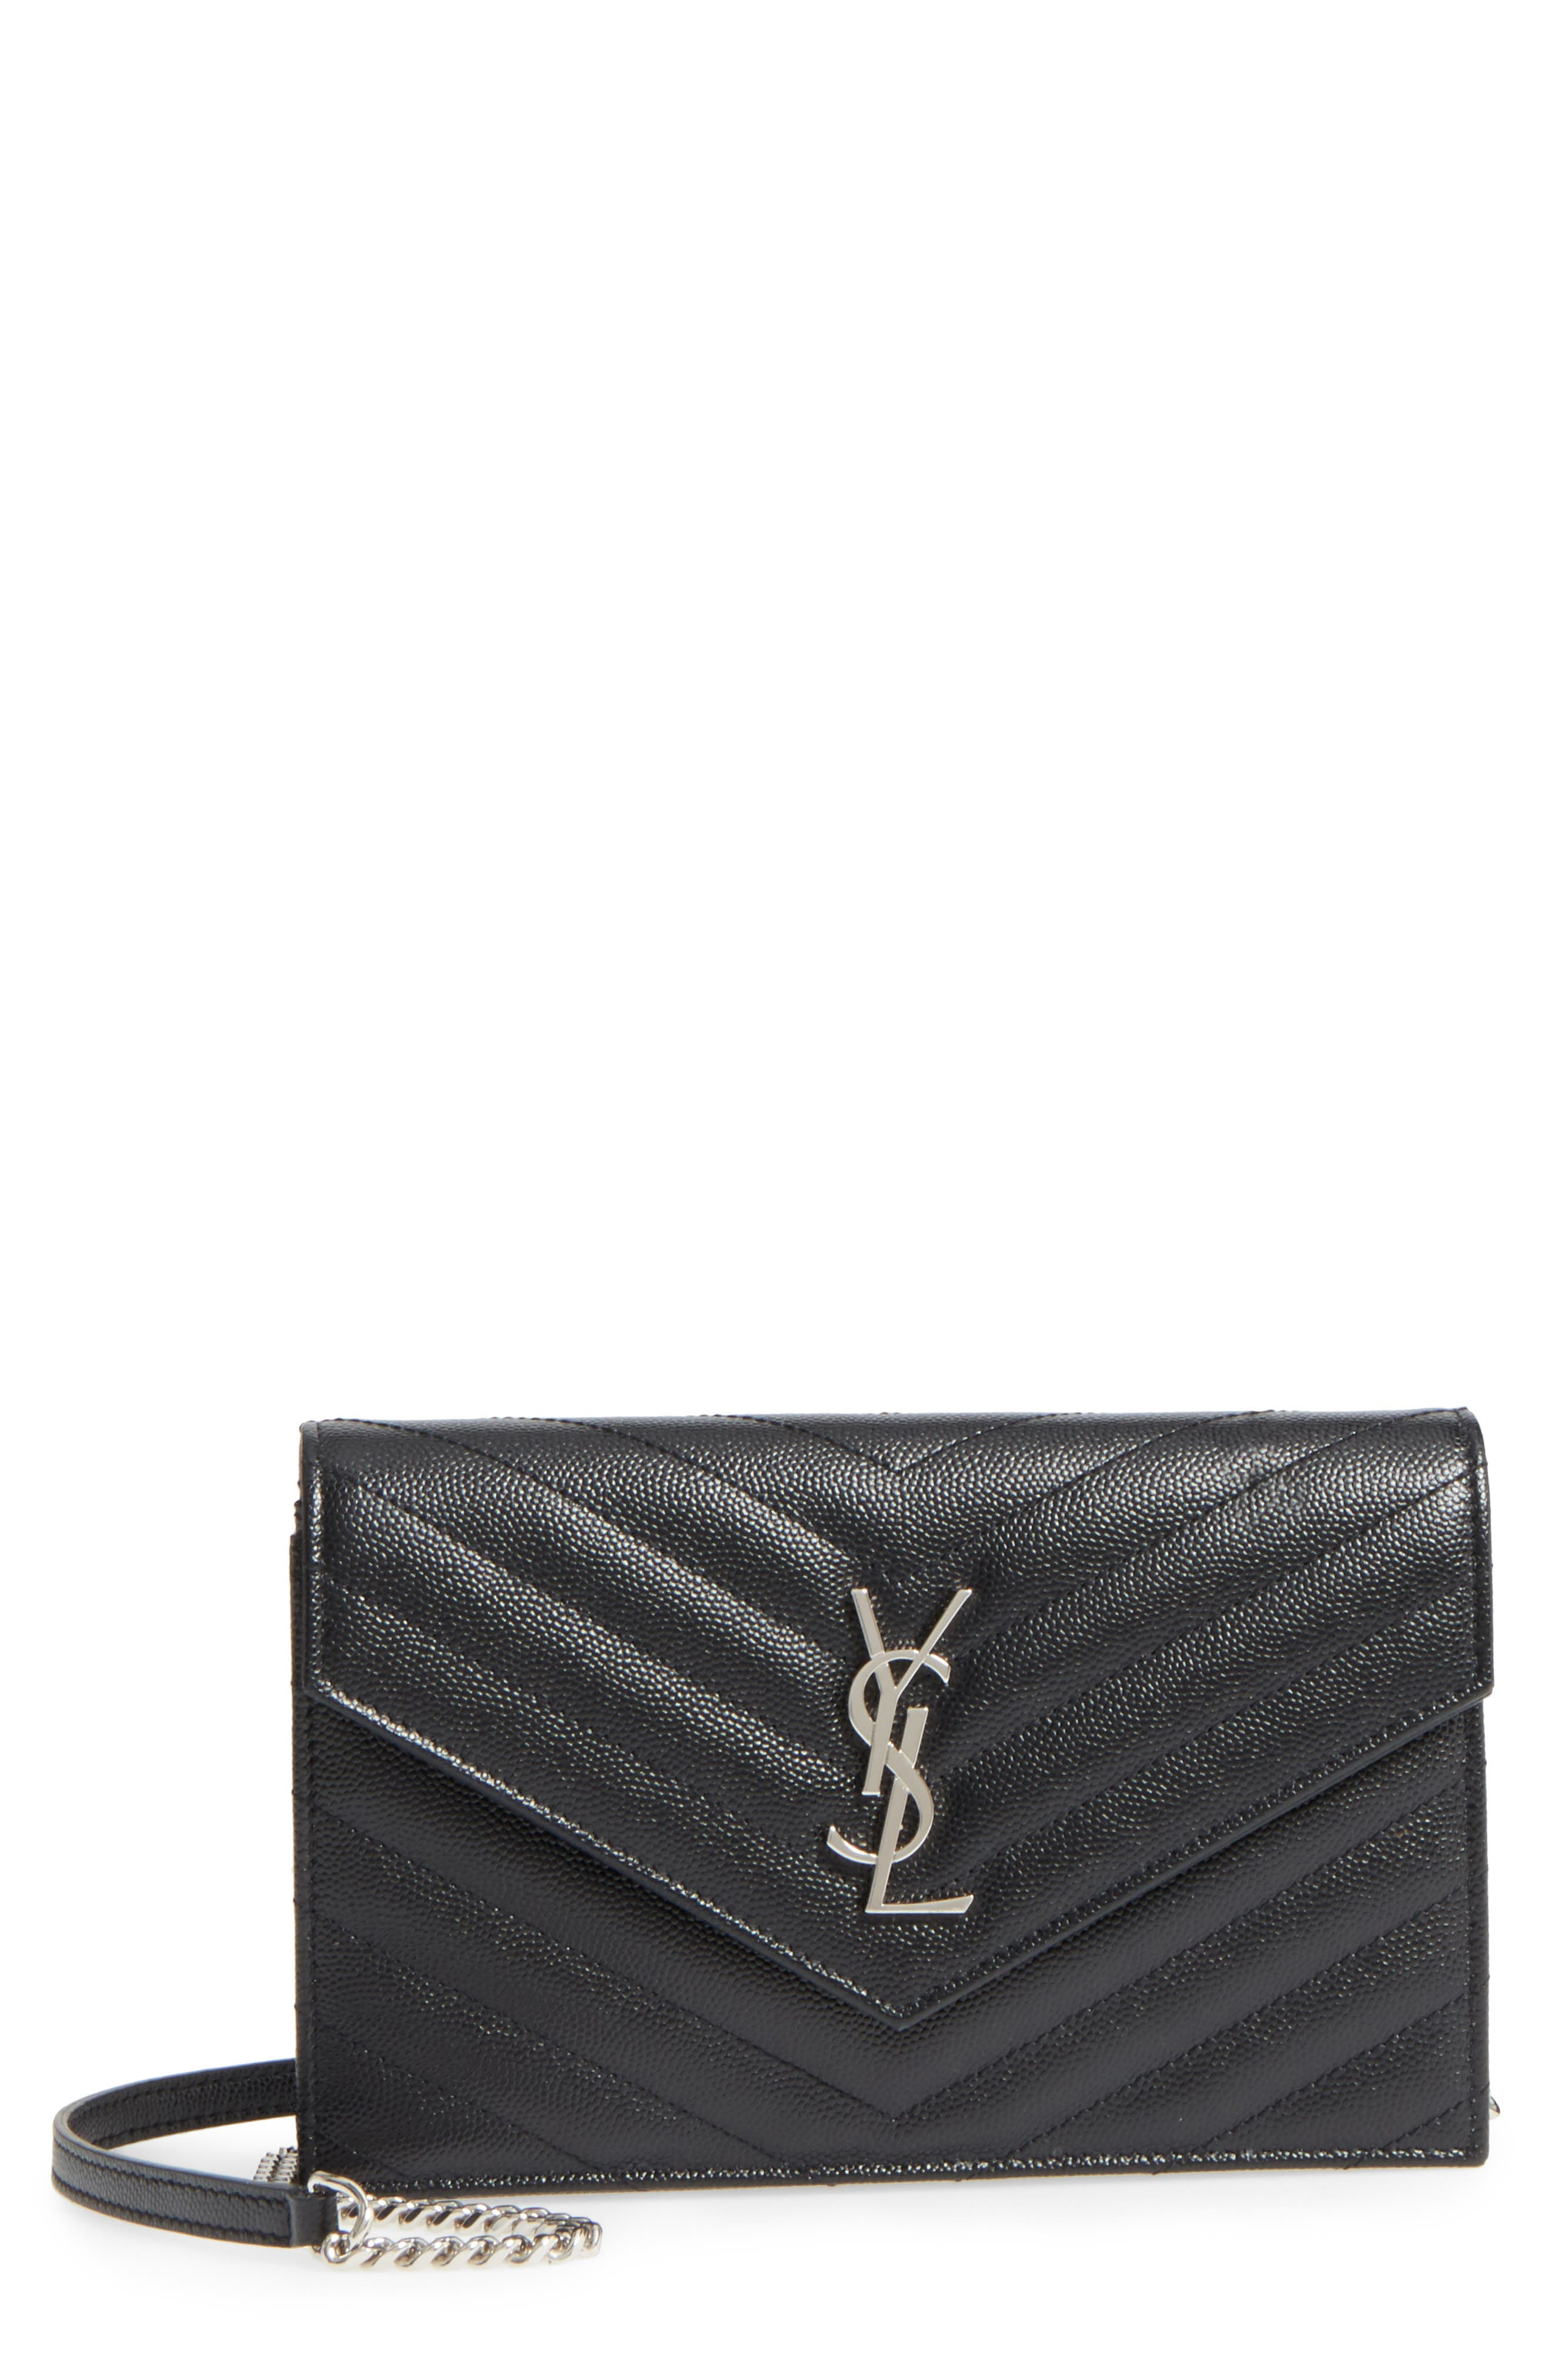 SAINT LAURENT, Quilted Calfskin Leather Wallet on a Chain, Main thumbnail 1, color, NOIR